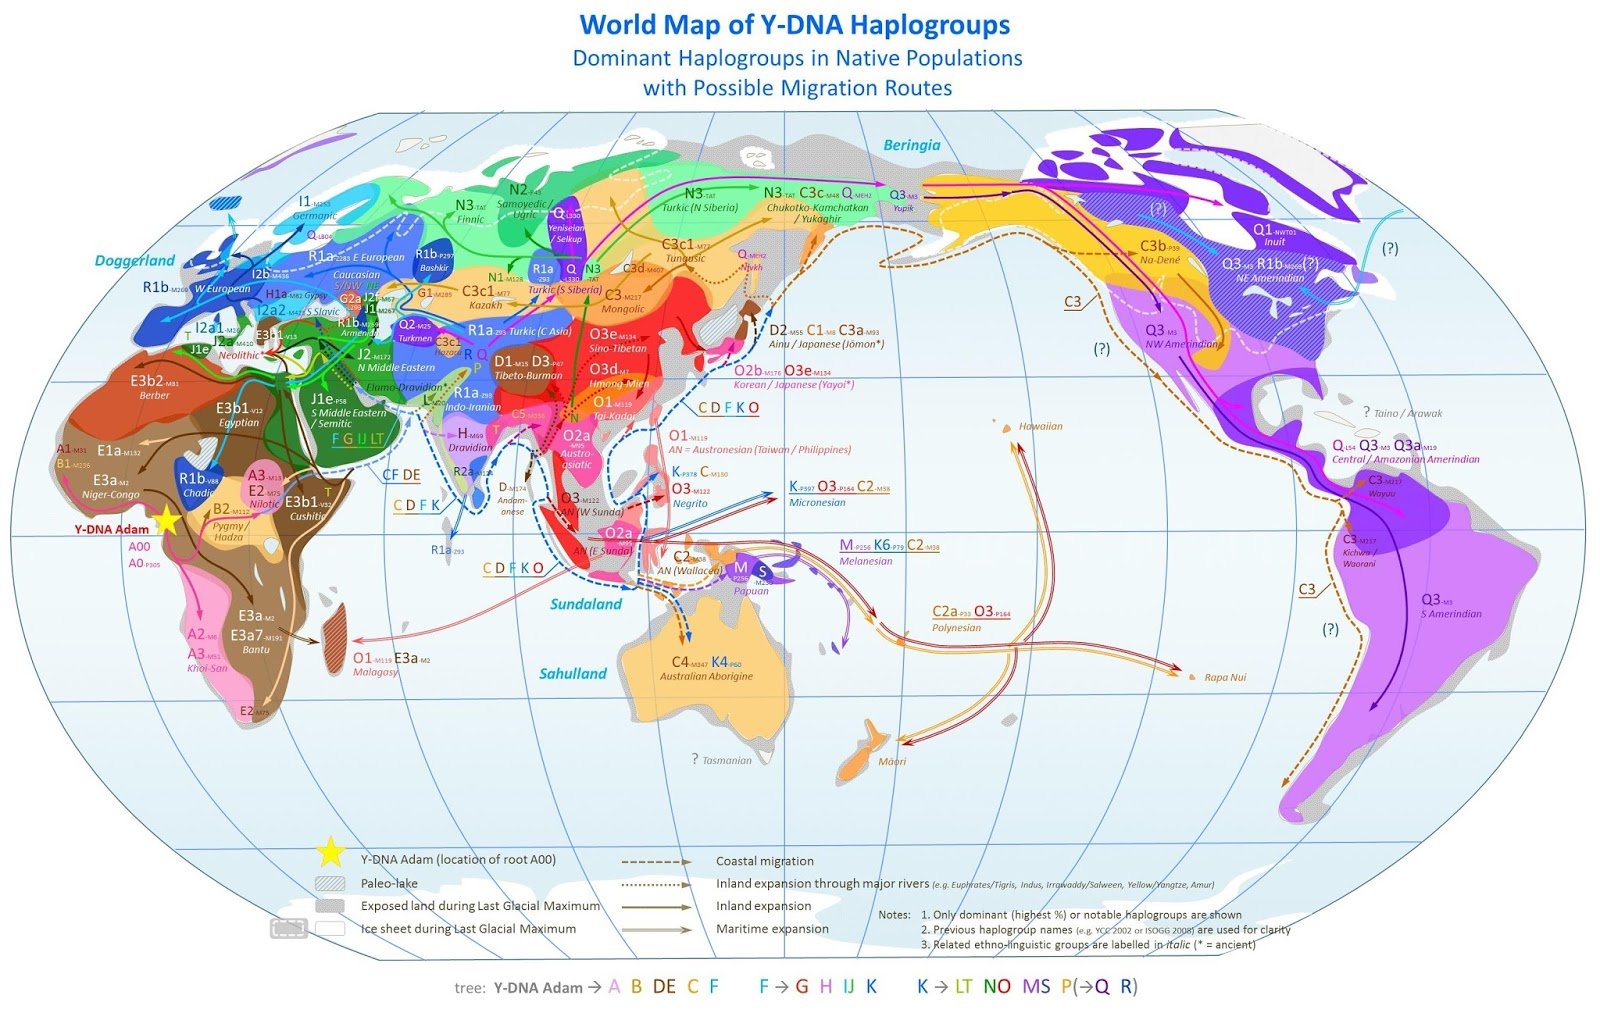 World map of Y-DNA Haplogroups with possible migration routes